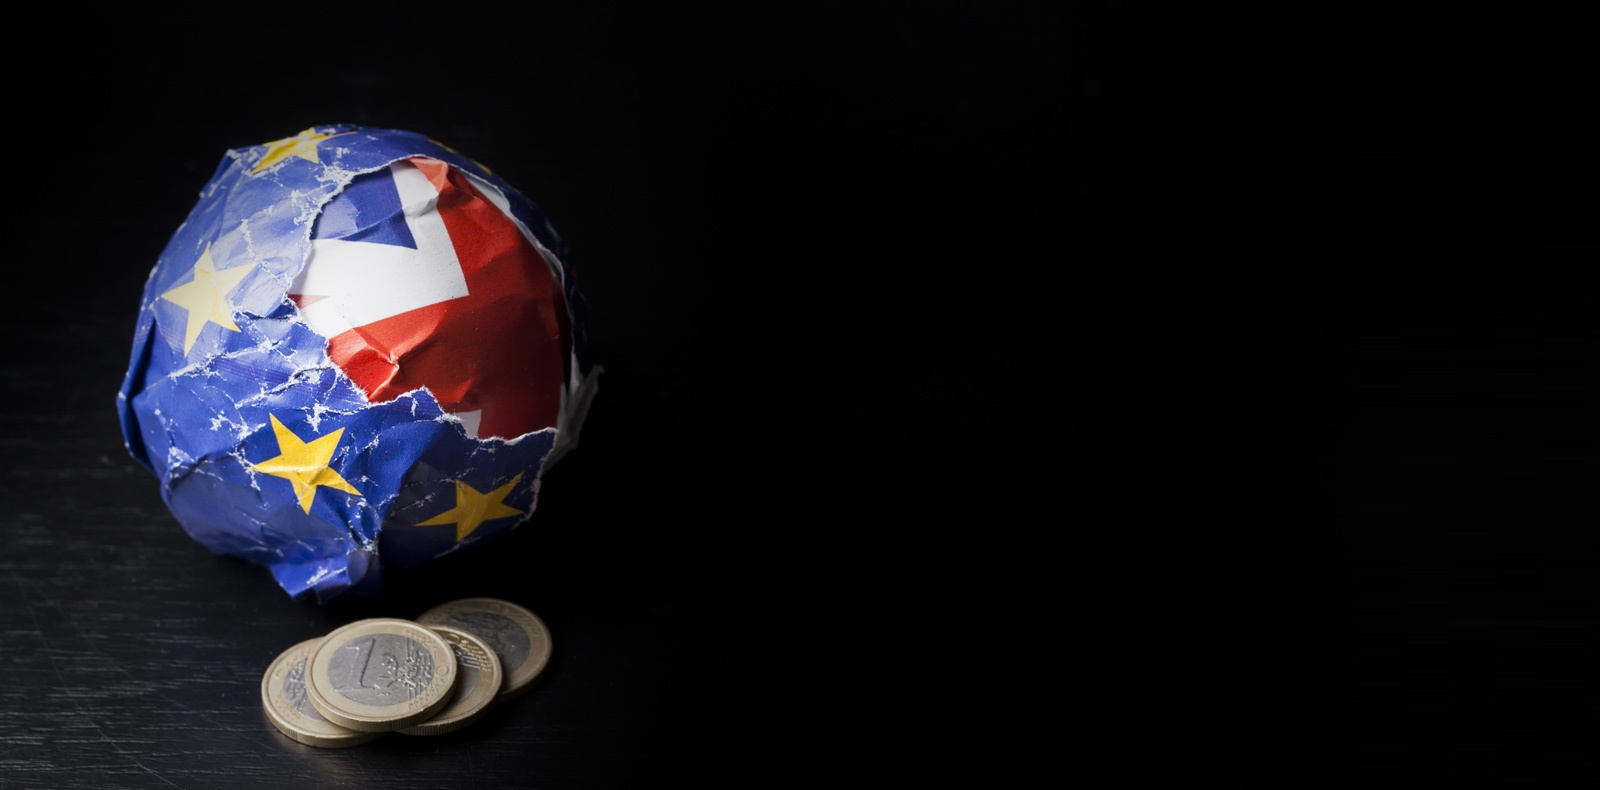 Whilst many economic analysts had expected to see the pound climb in the wake of a Brexit deal being announced, these gains have yet to materialise.